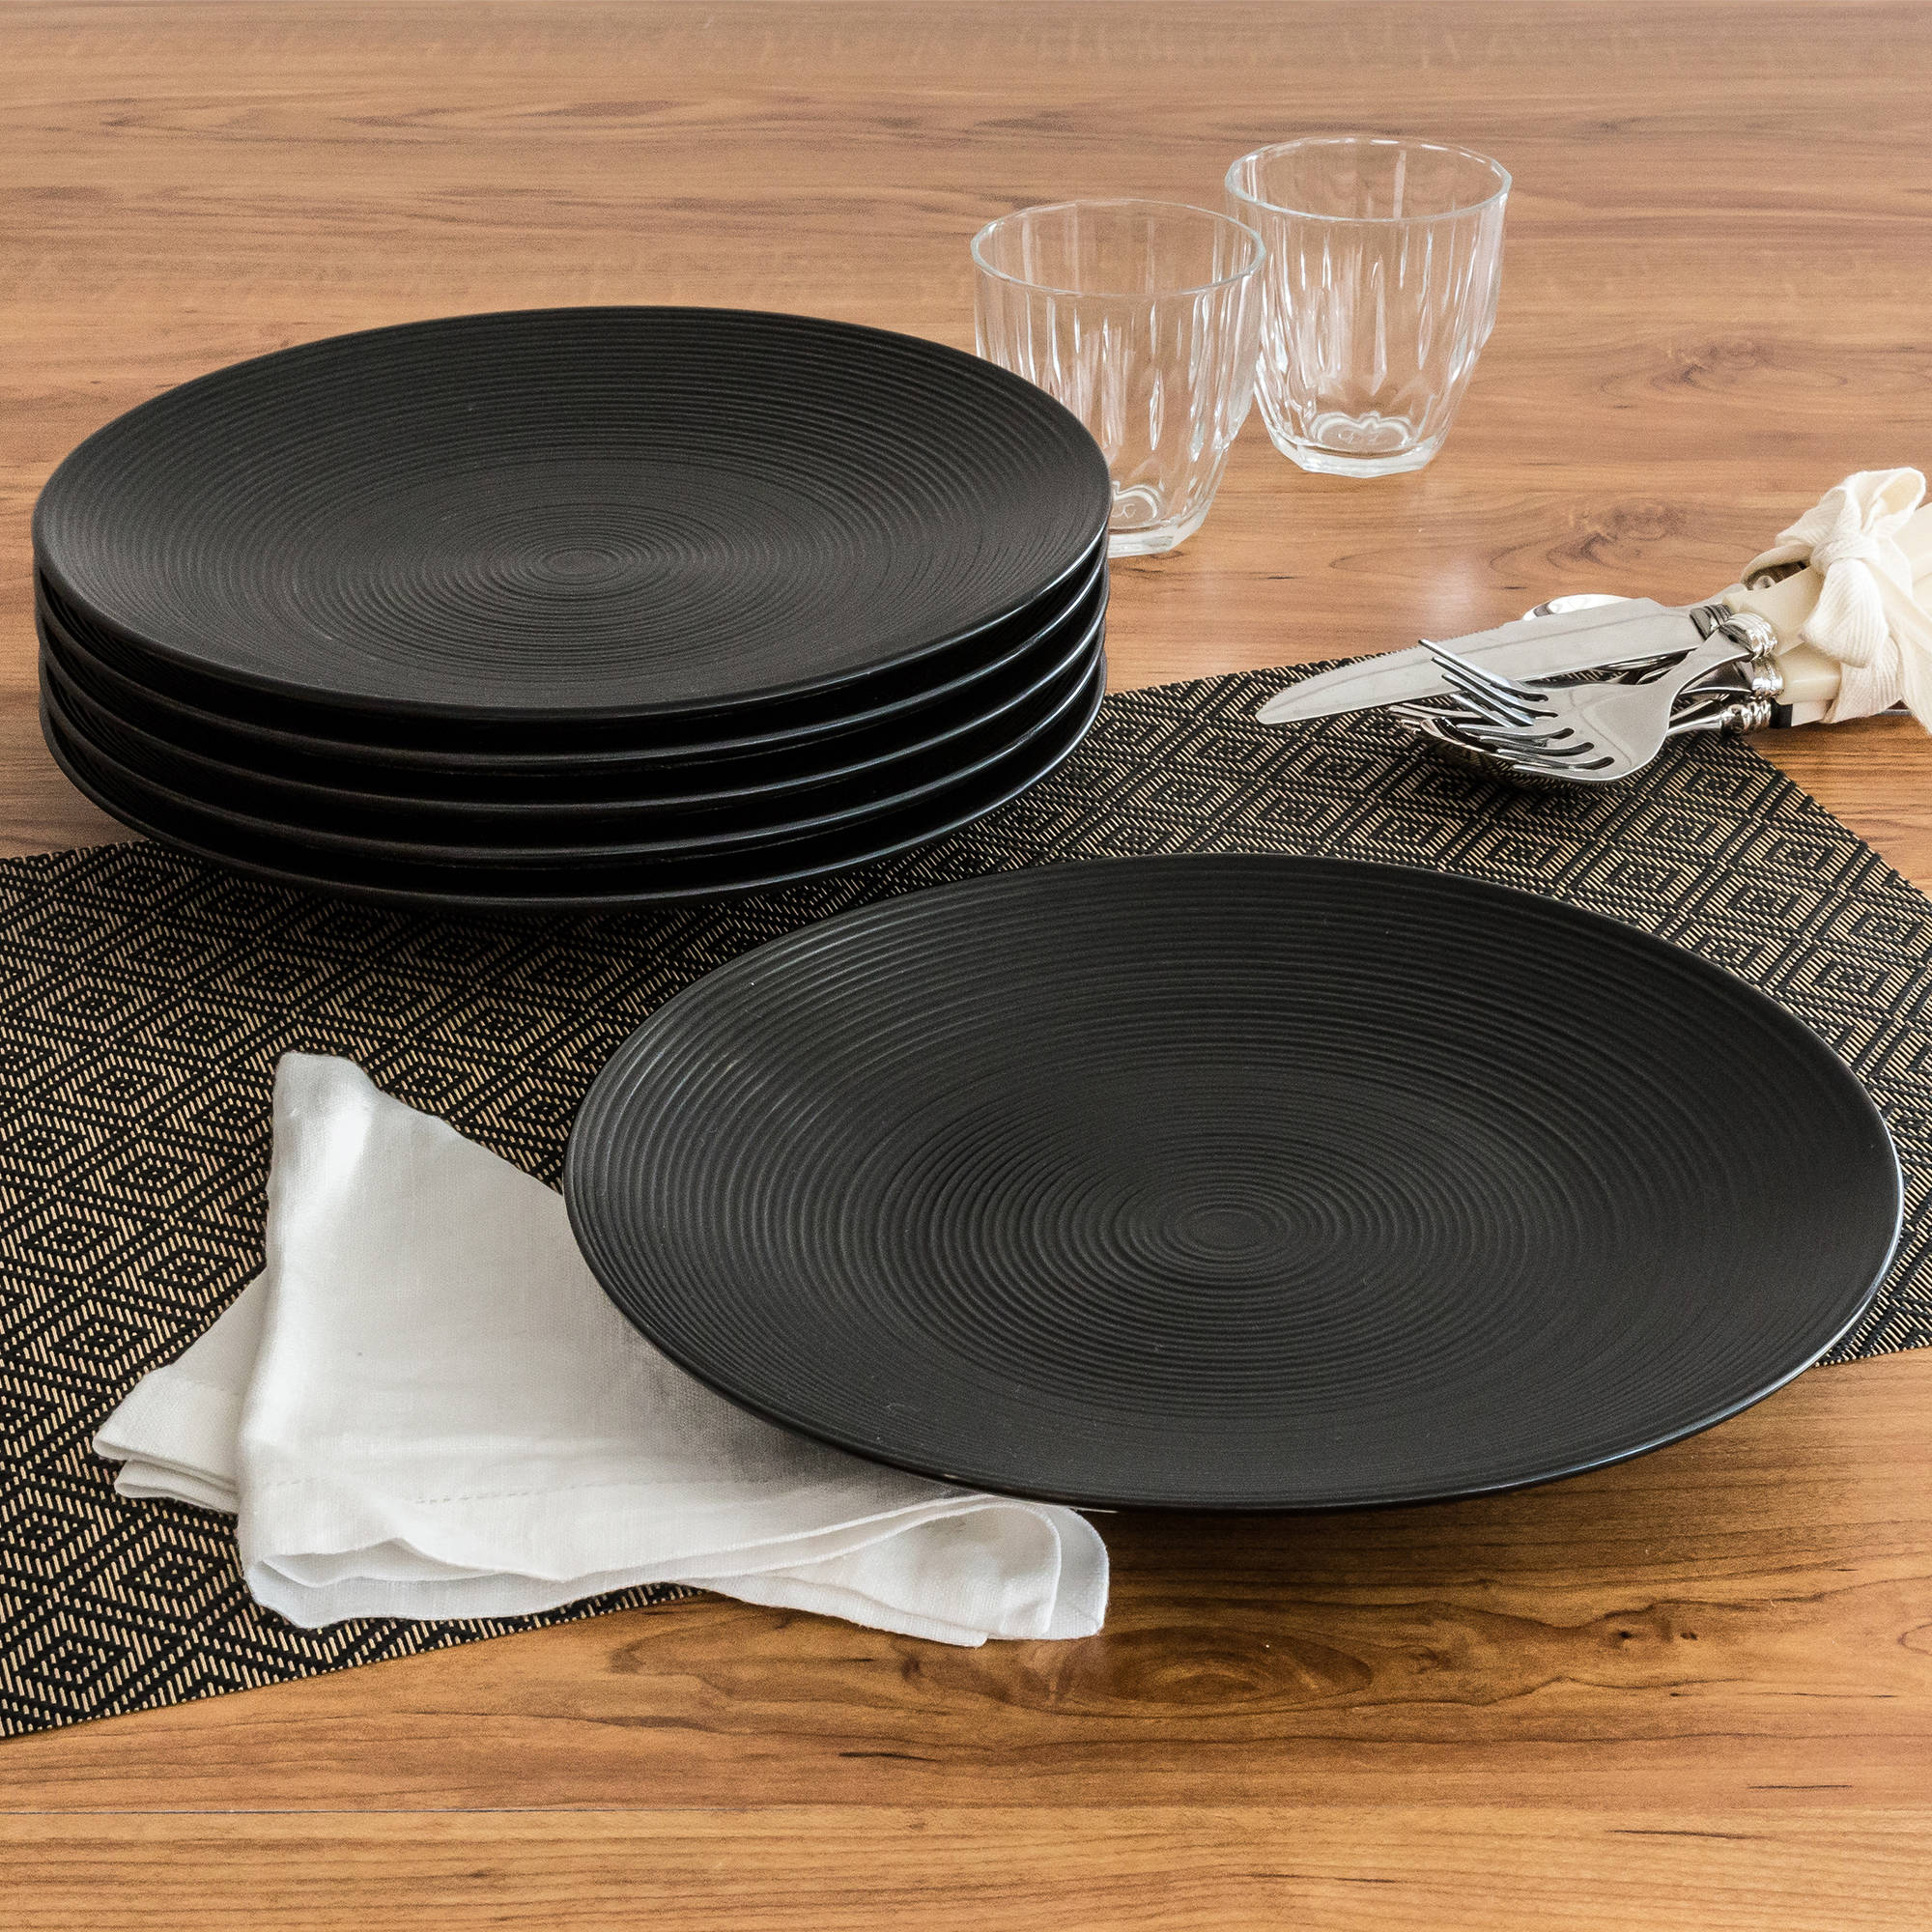 Better Homes and Gardens Matte Swirl Dinner Plates Black Set of 6 & Better Homes and Gardens Matte Swirl Dinner Plates Black Set of 6 ...